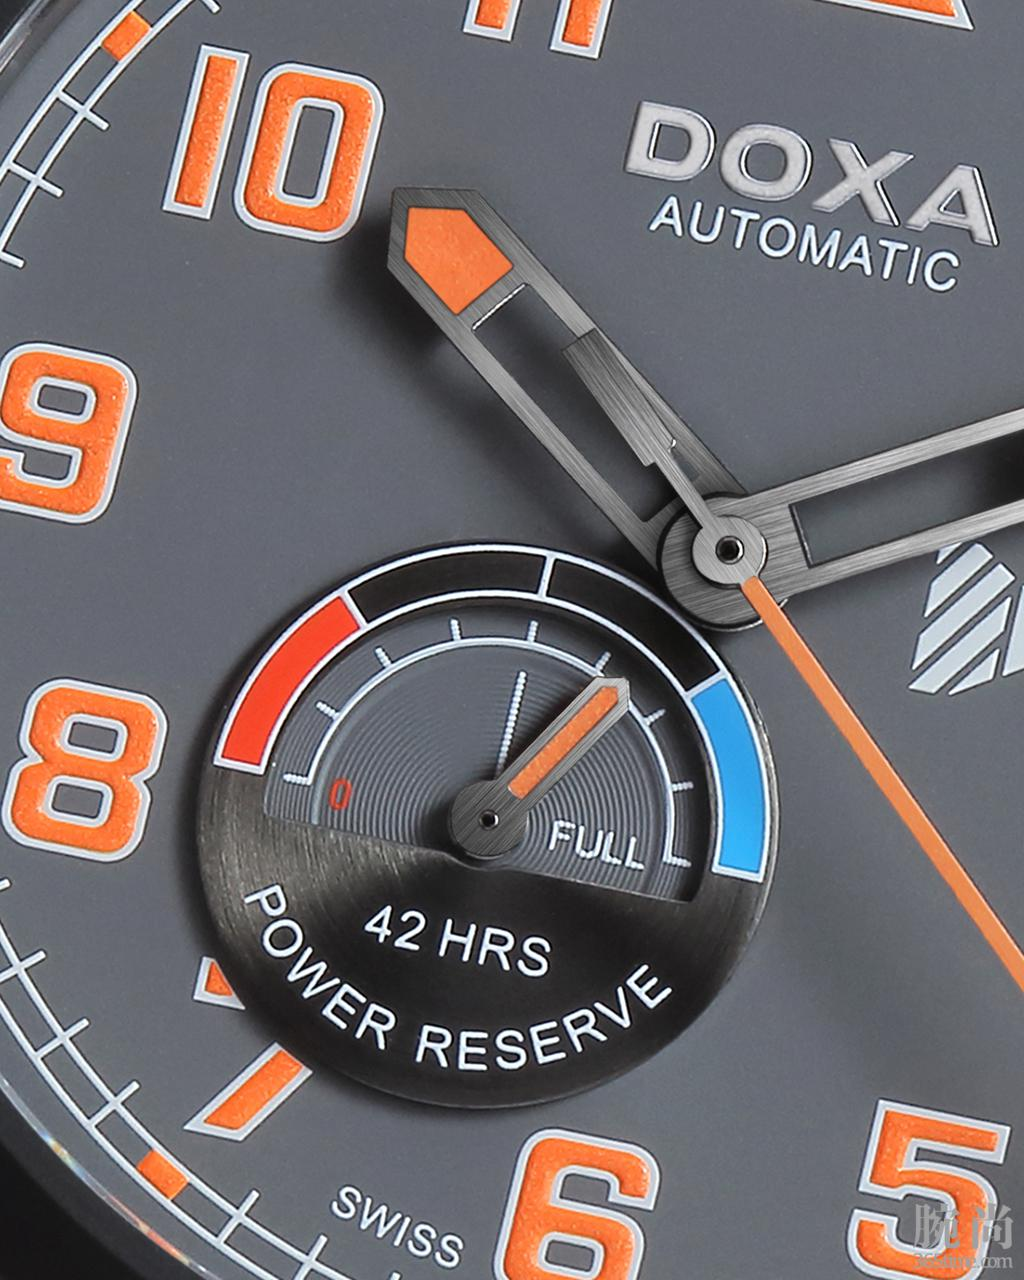 doxa-pilot-collection-d213-watch-review-6.jpg